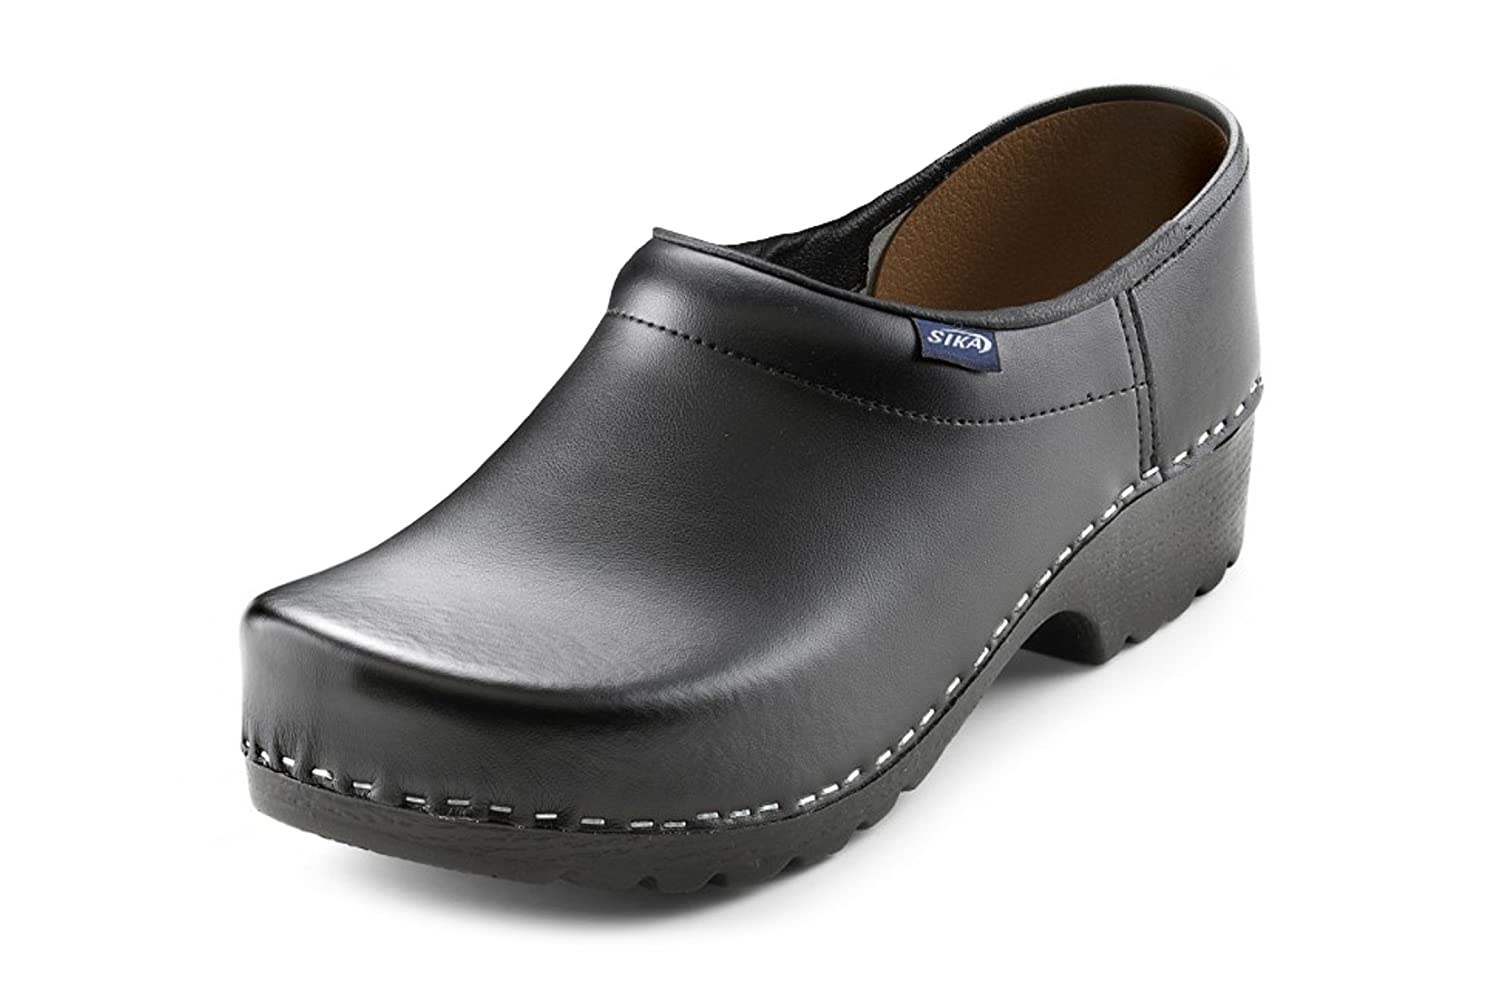 Sika Footwear Traditionell Arbeits-Clogs schwarz | 38